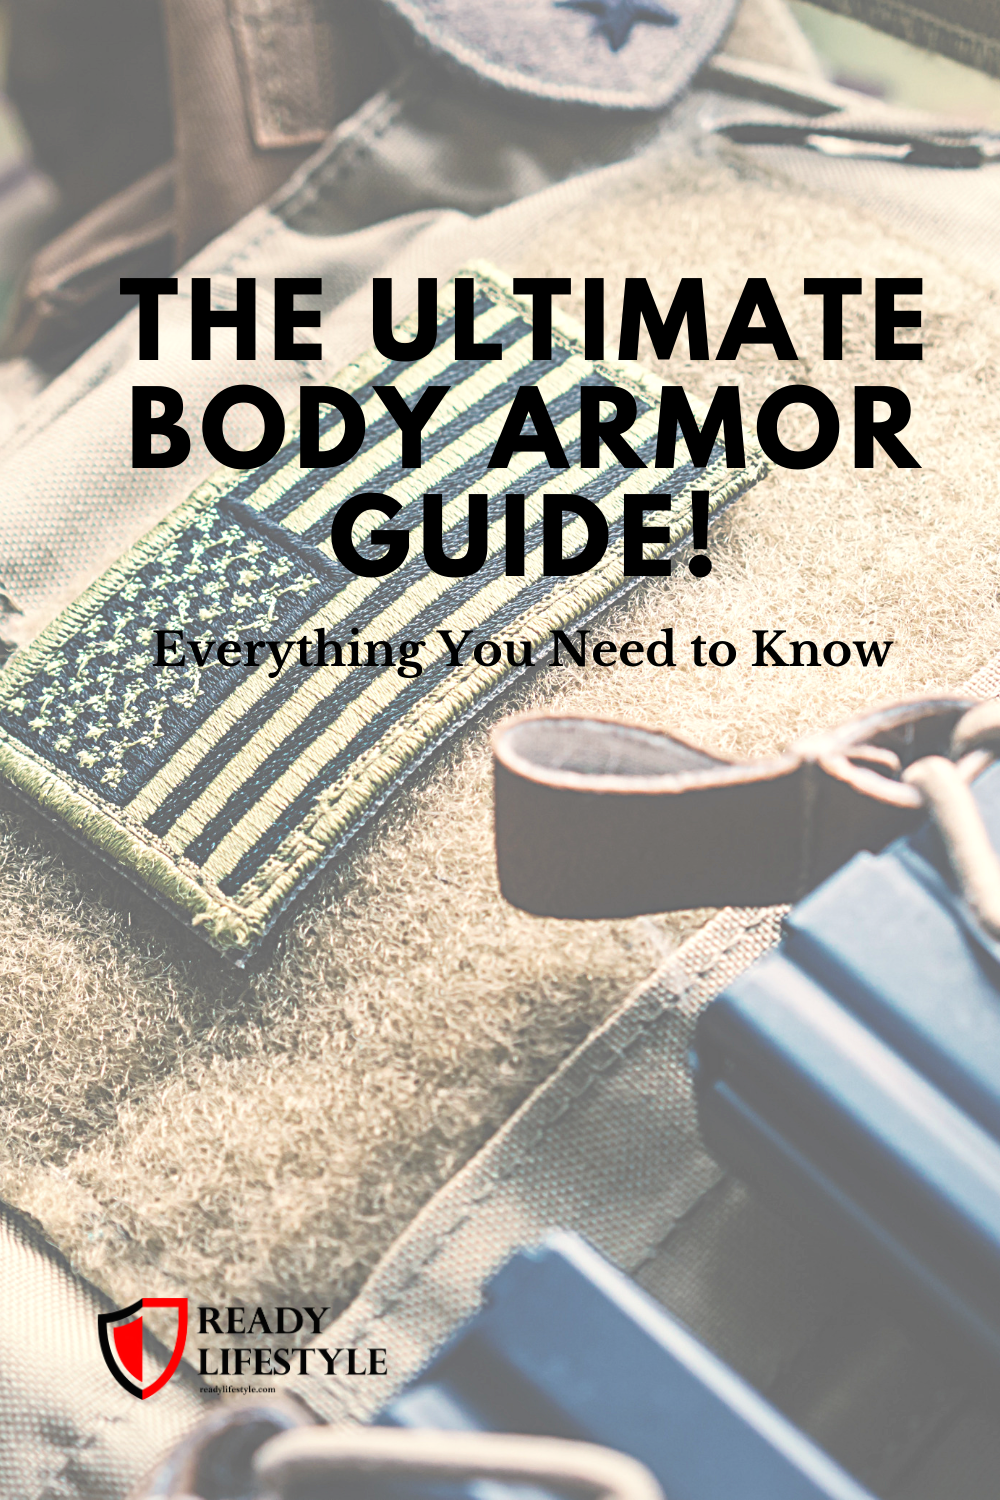 The Ultimate Body Armor Guide!